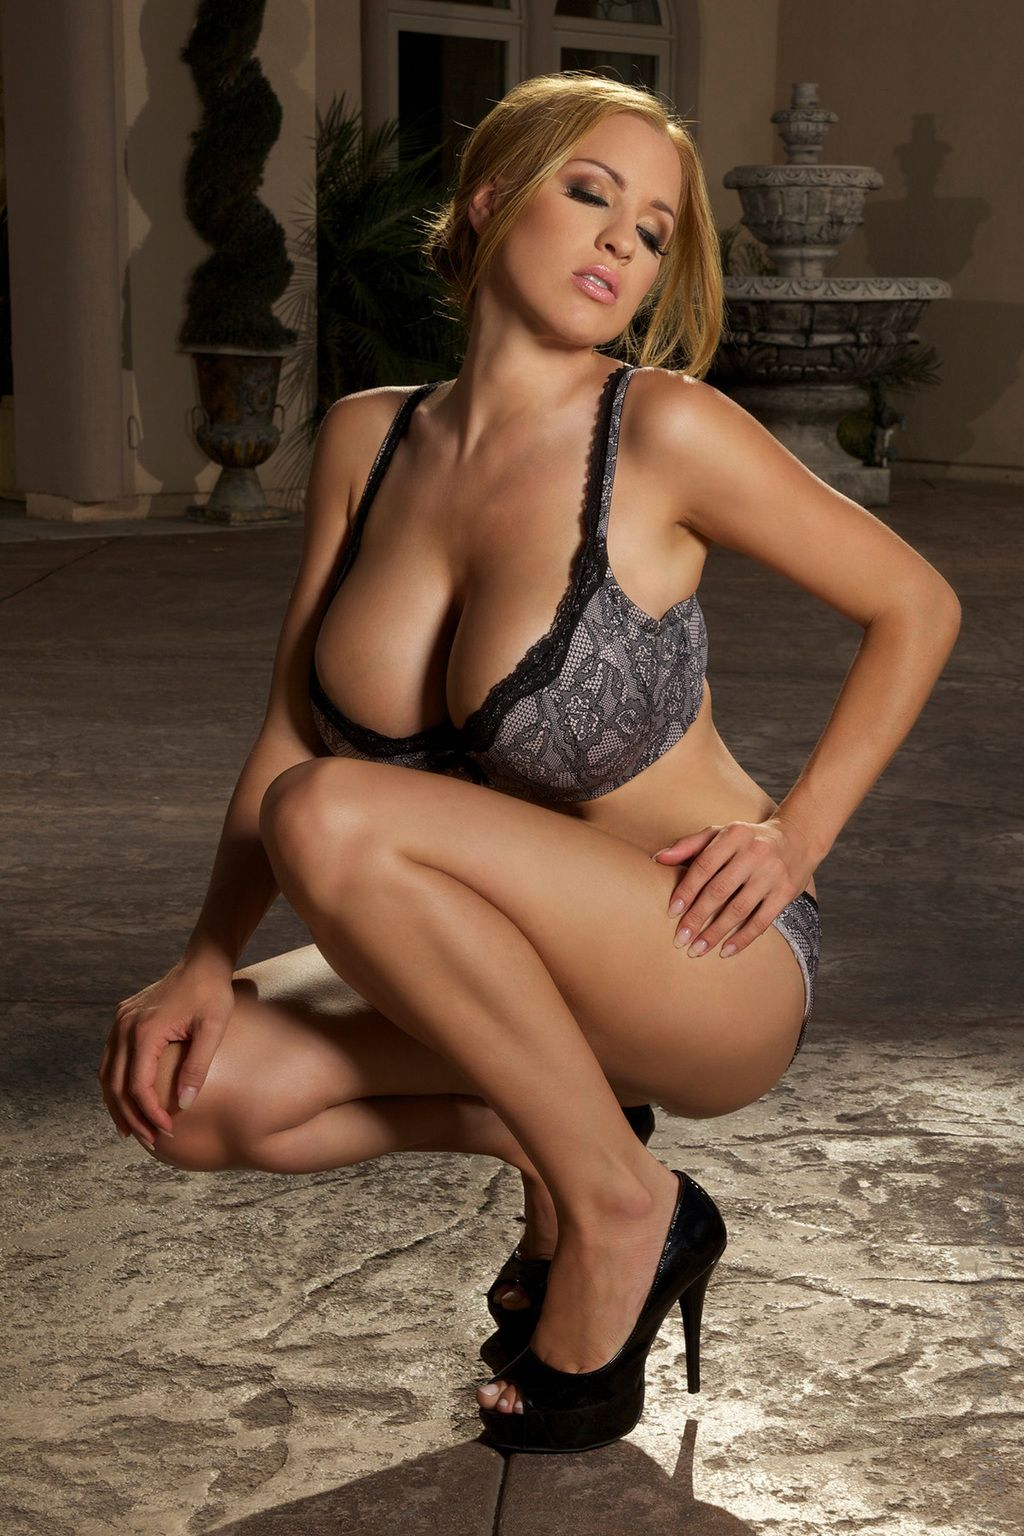 Jordan carver you and me